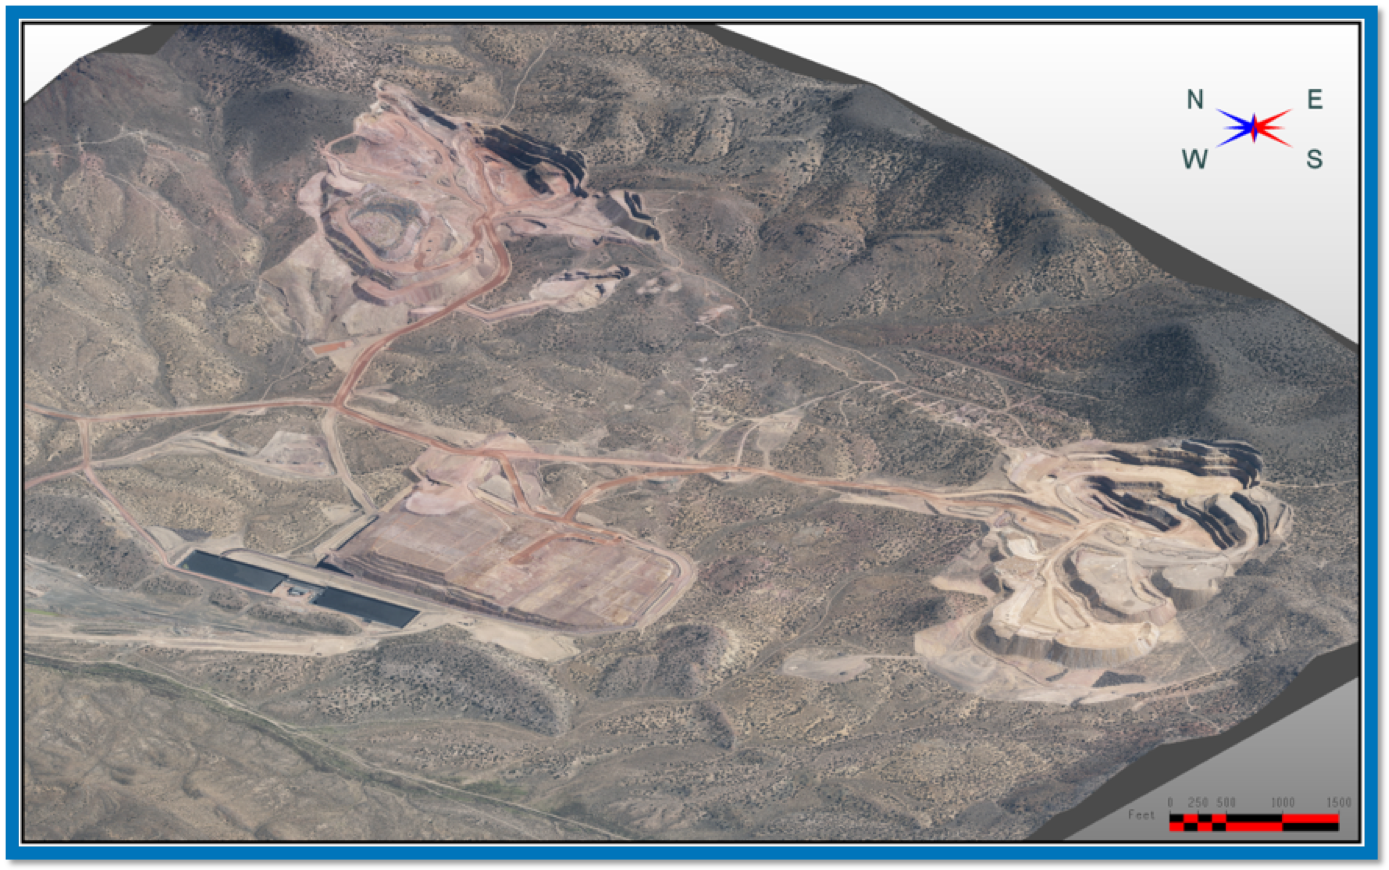 FIORE GOLD REPORTS Q1 2020 PRODUCTION AND PROVIDES FY2020 GUIDANCE